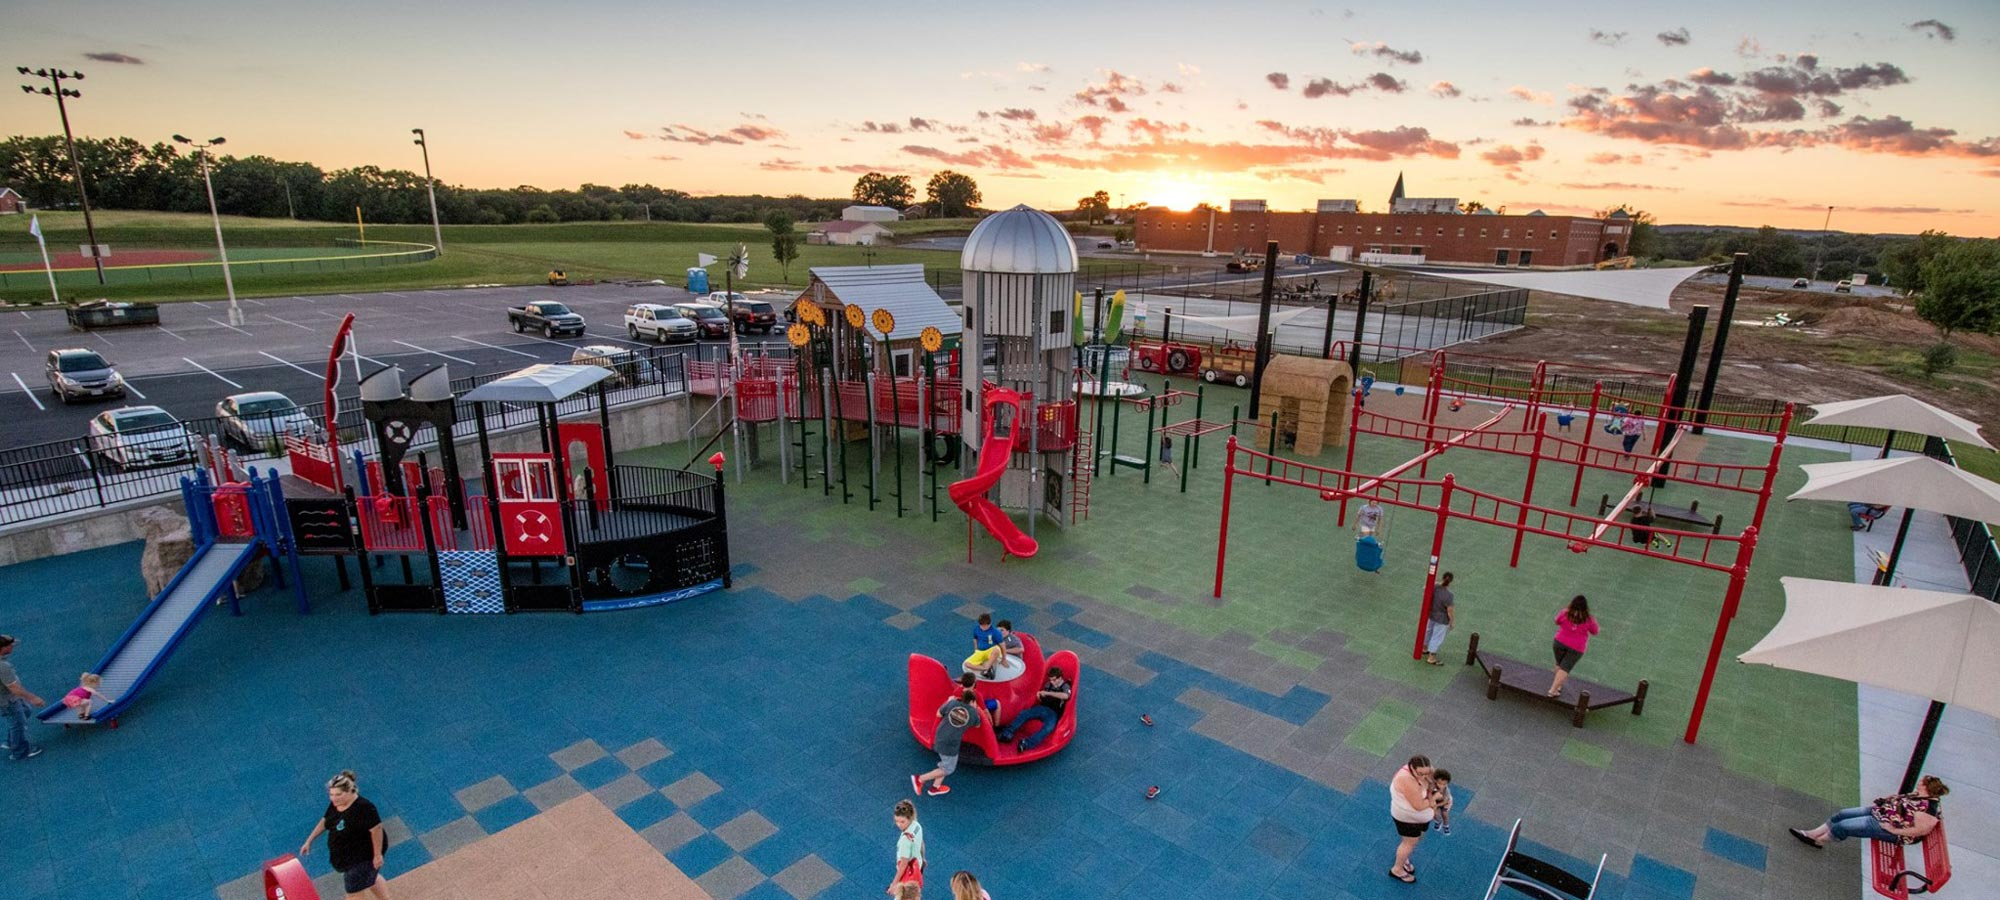 commercial recreational equipment & playgrounds